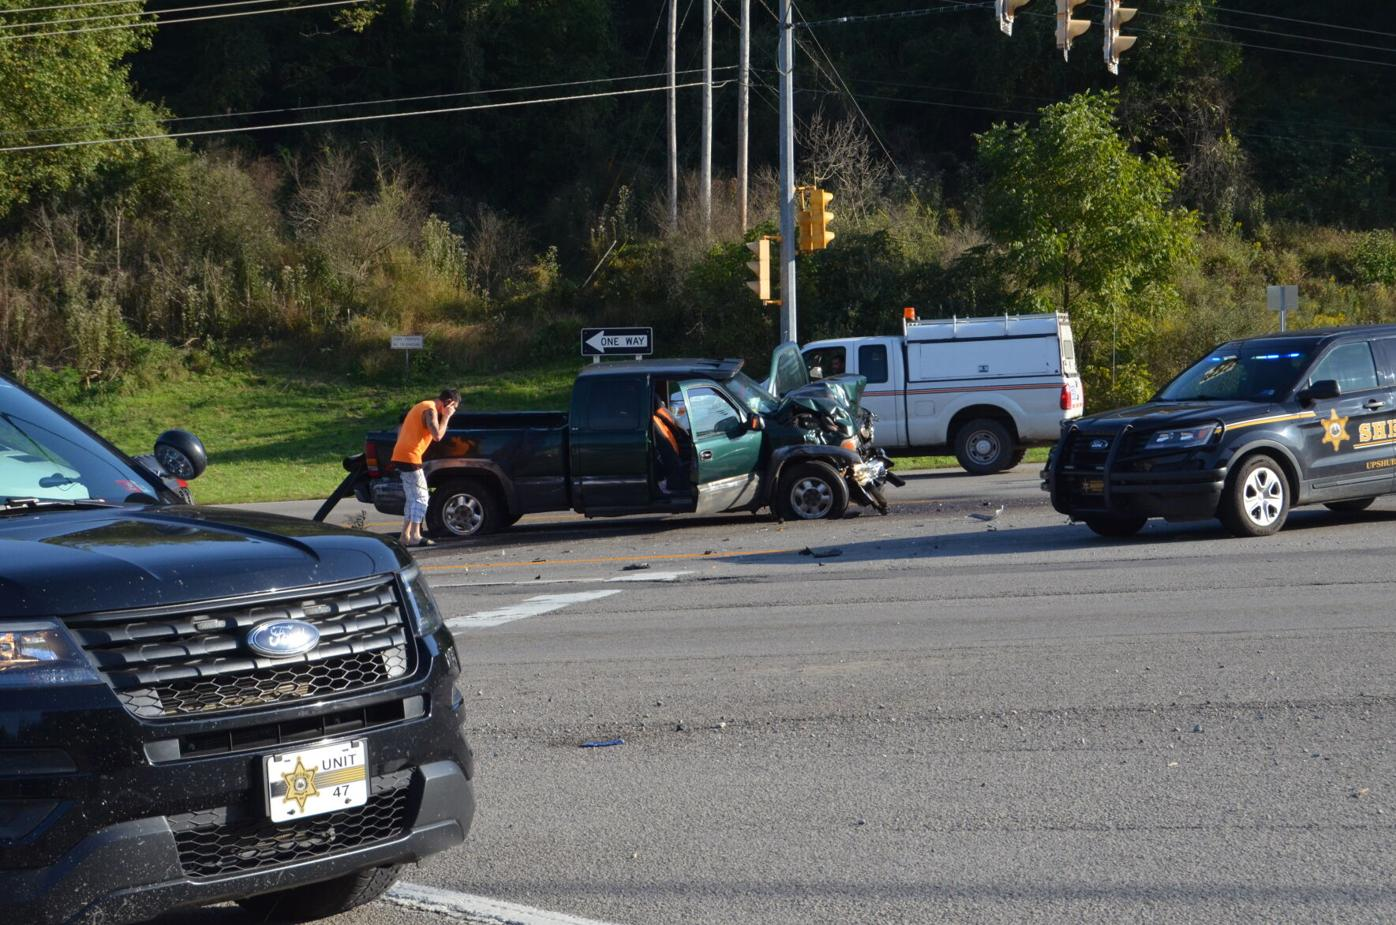 Accident at 50/98 intersection